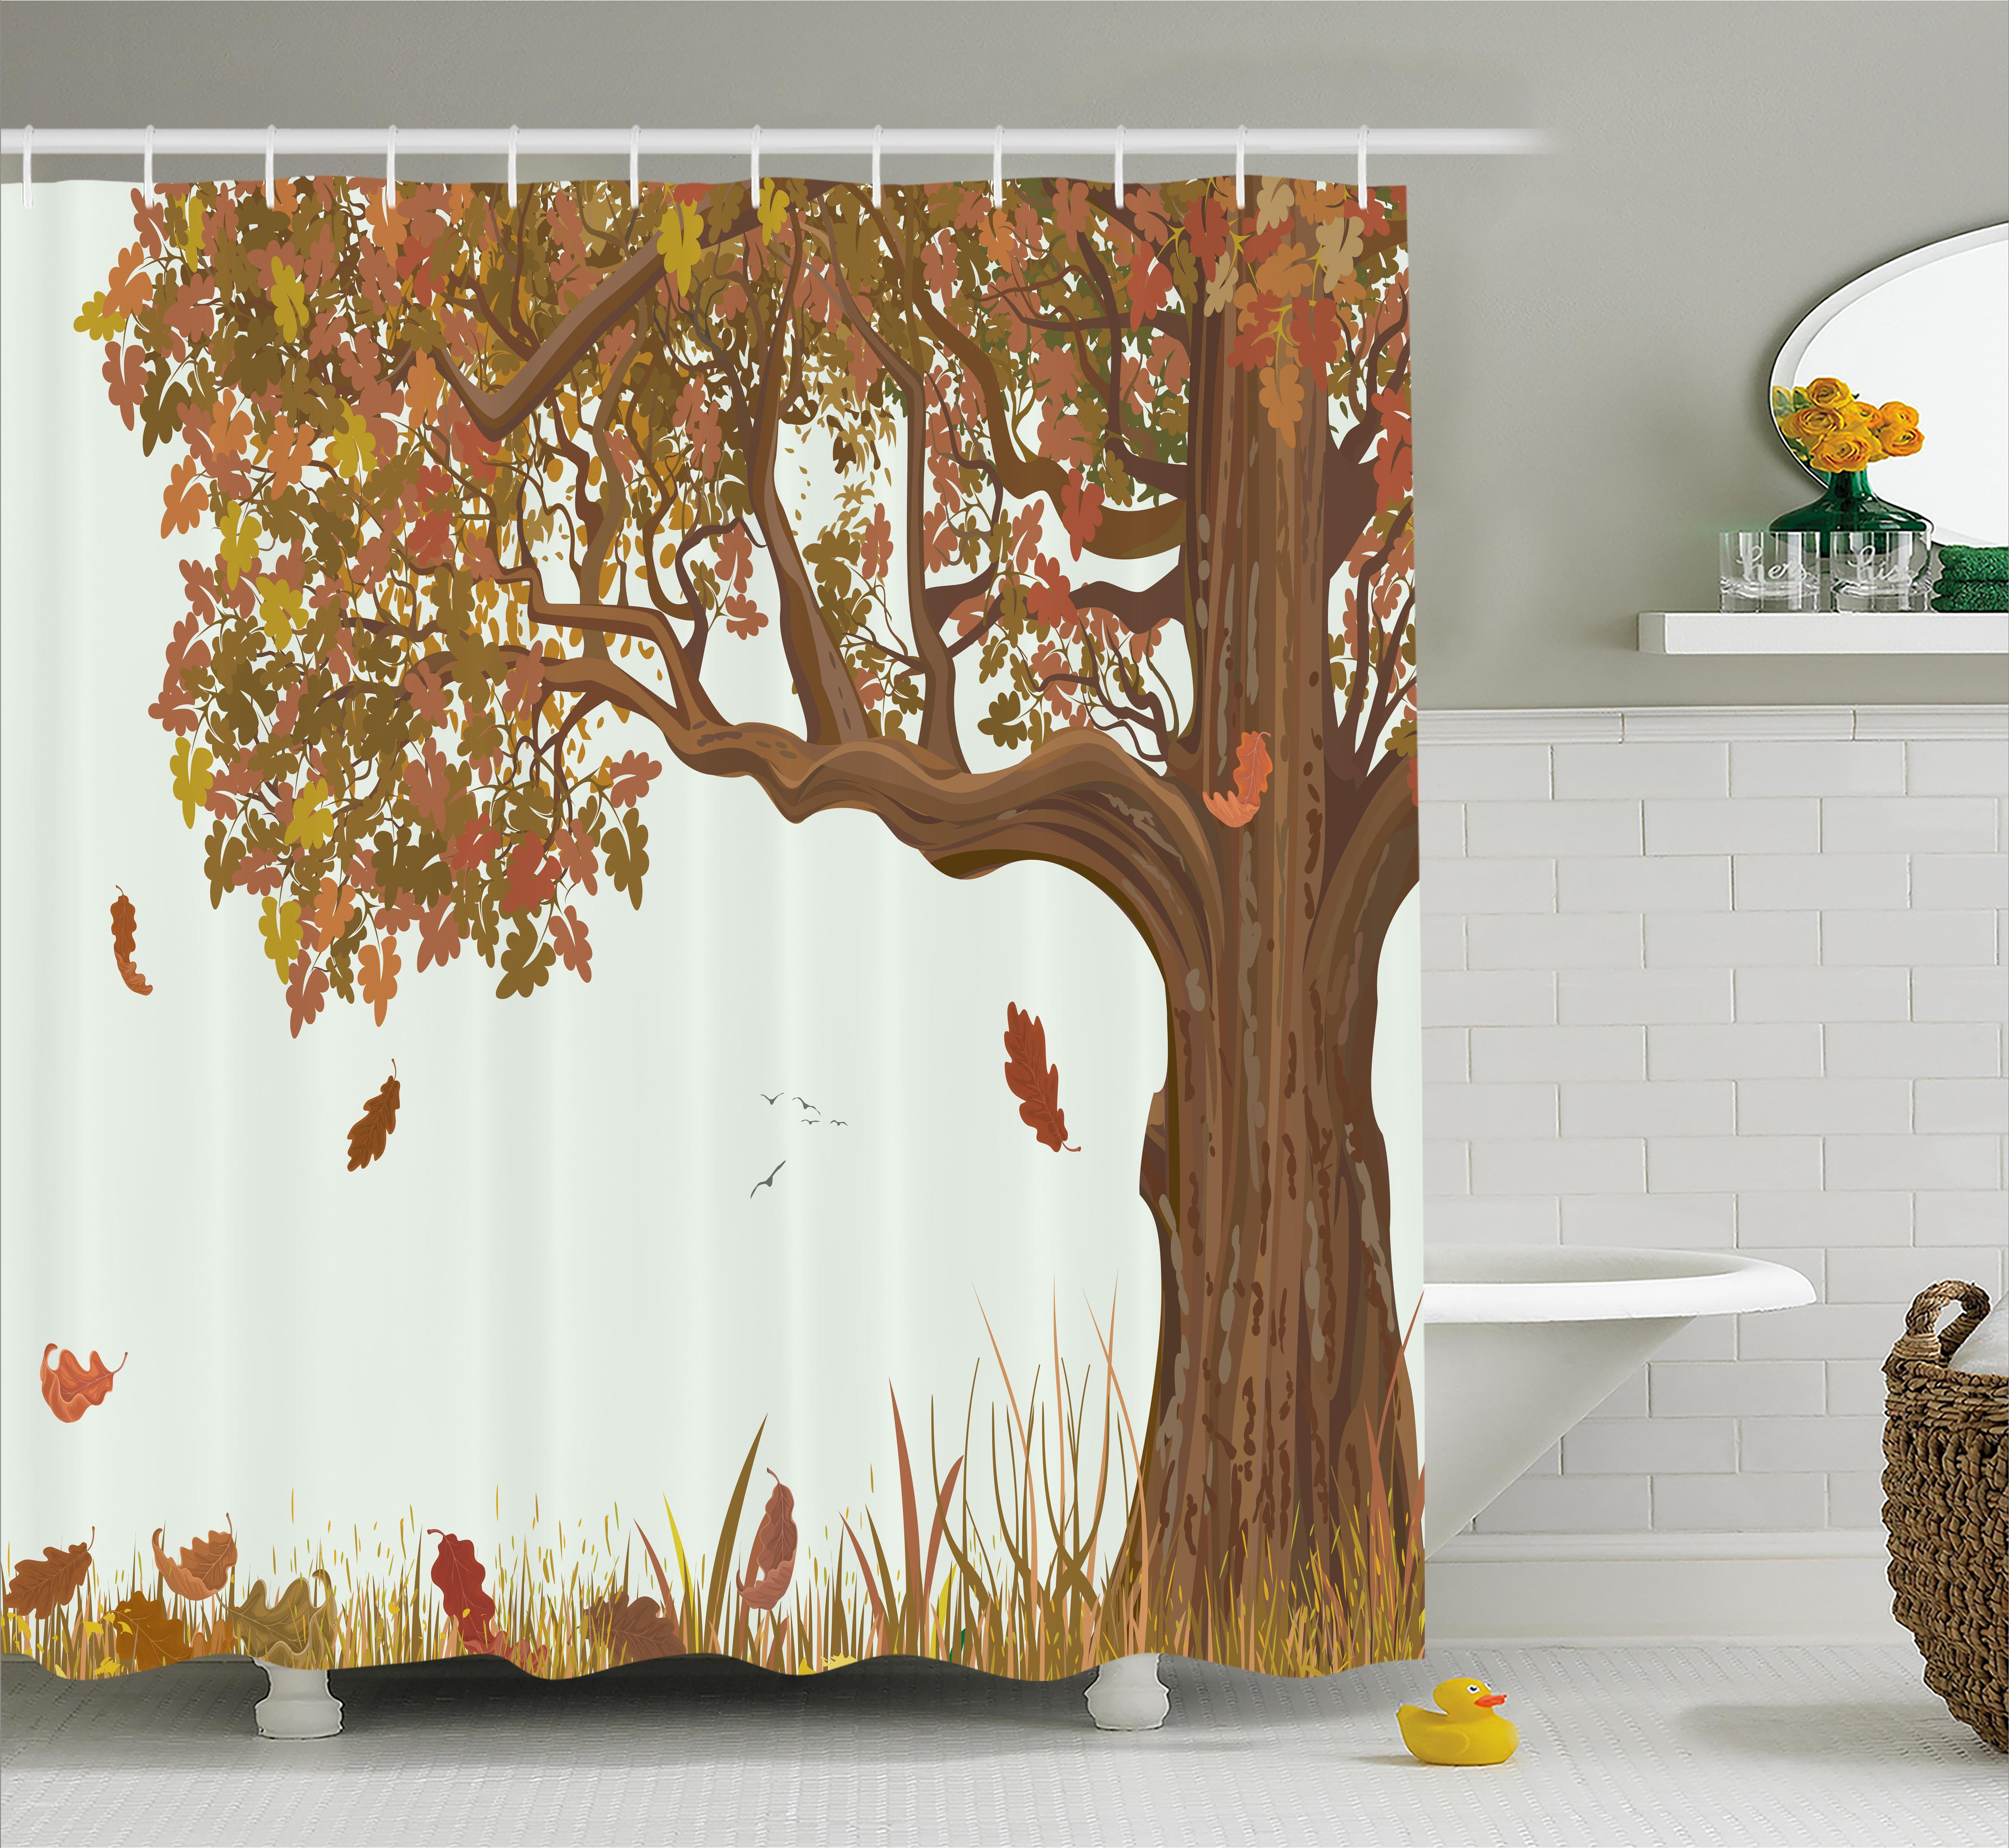 Tree Of Life Shower Curtain, Autumn Season Fall Shady Deciduous Oak Leaves  In Park Countryside